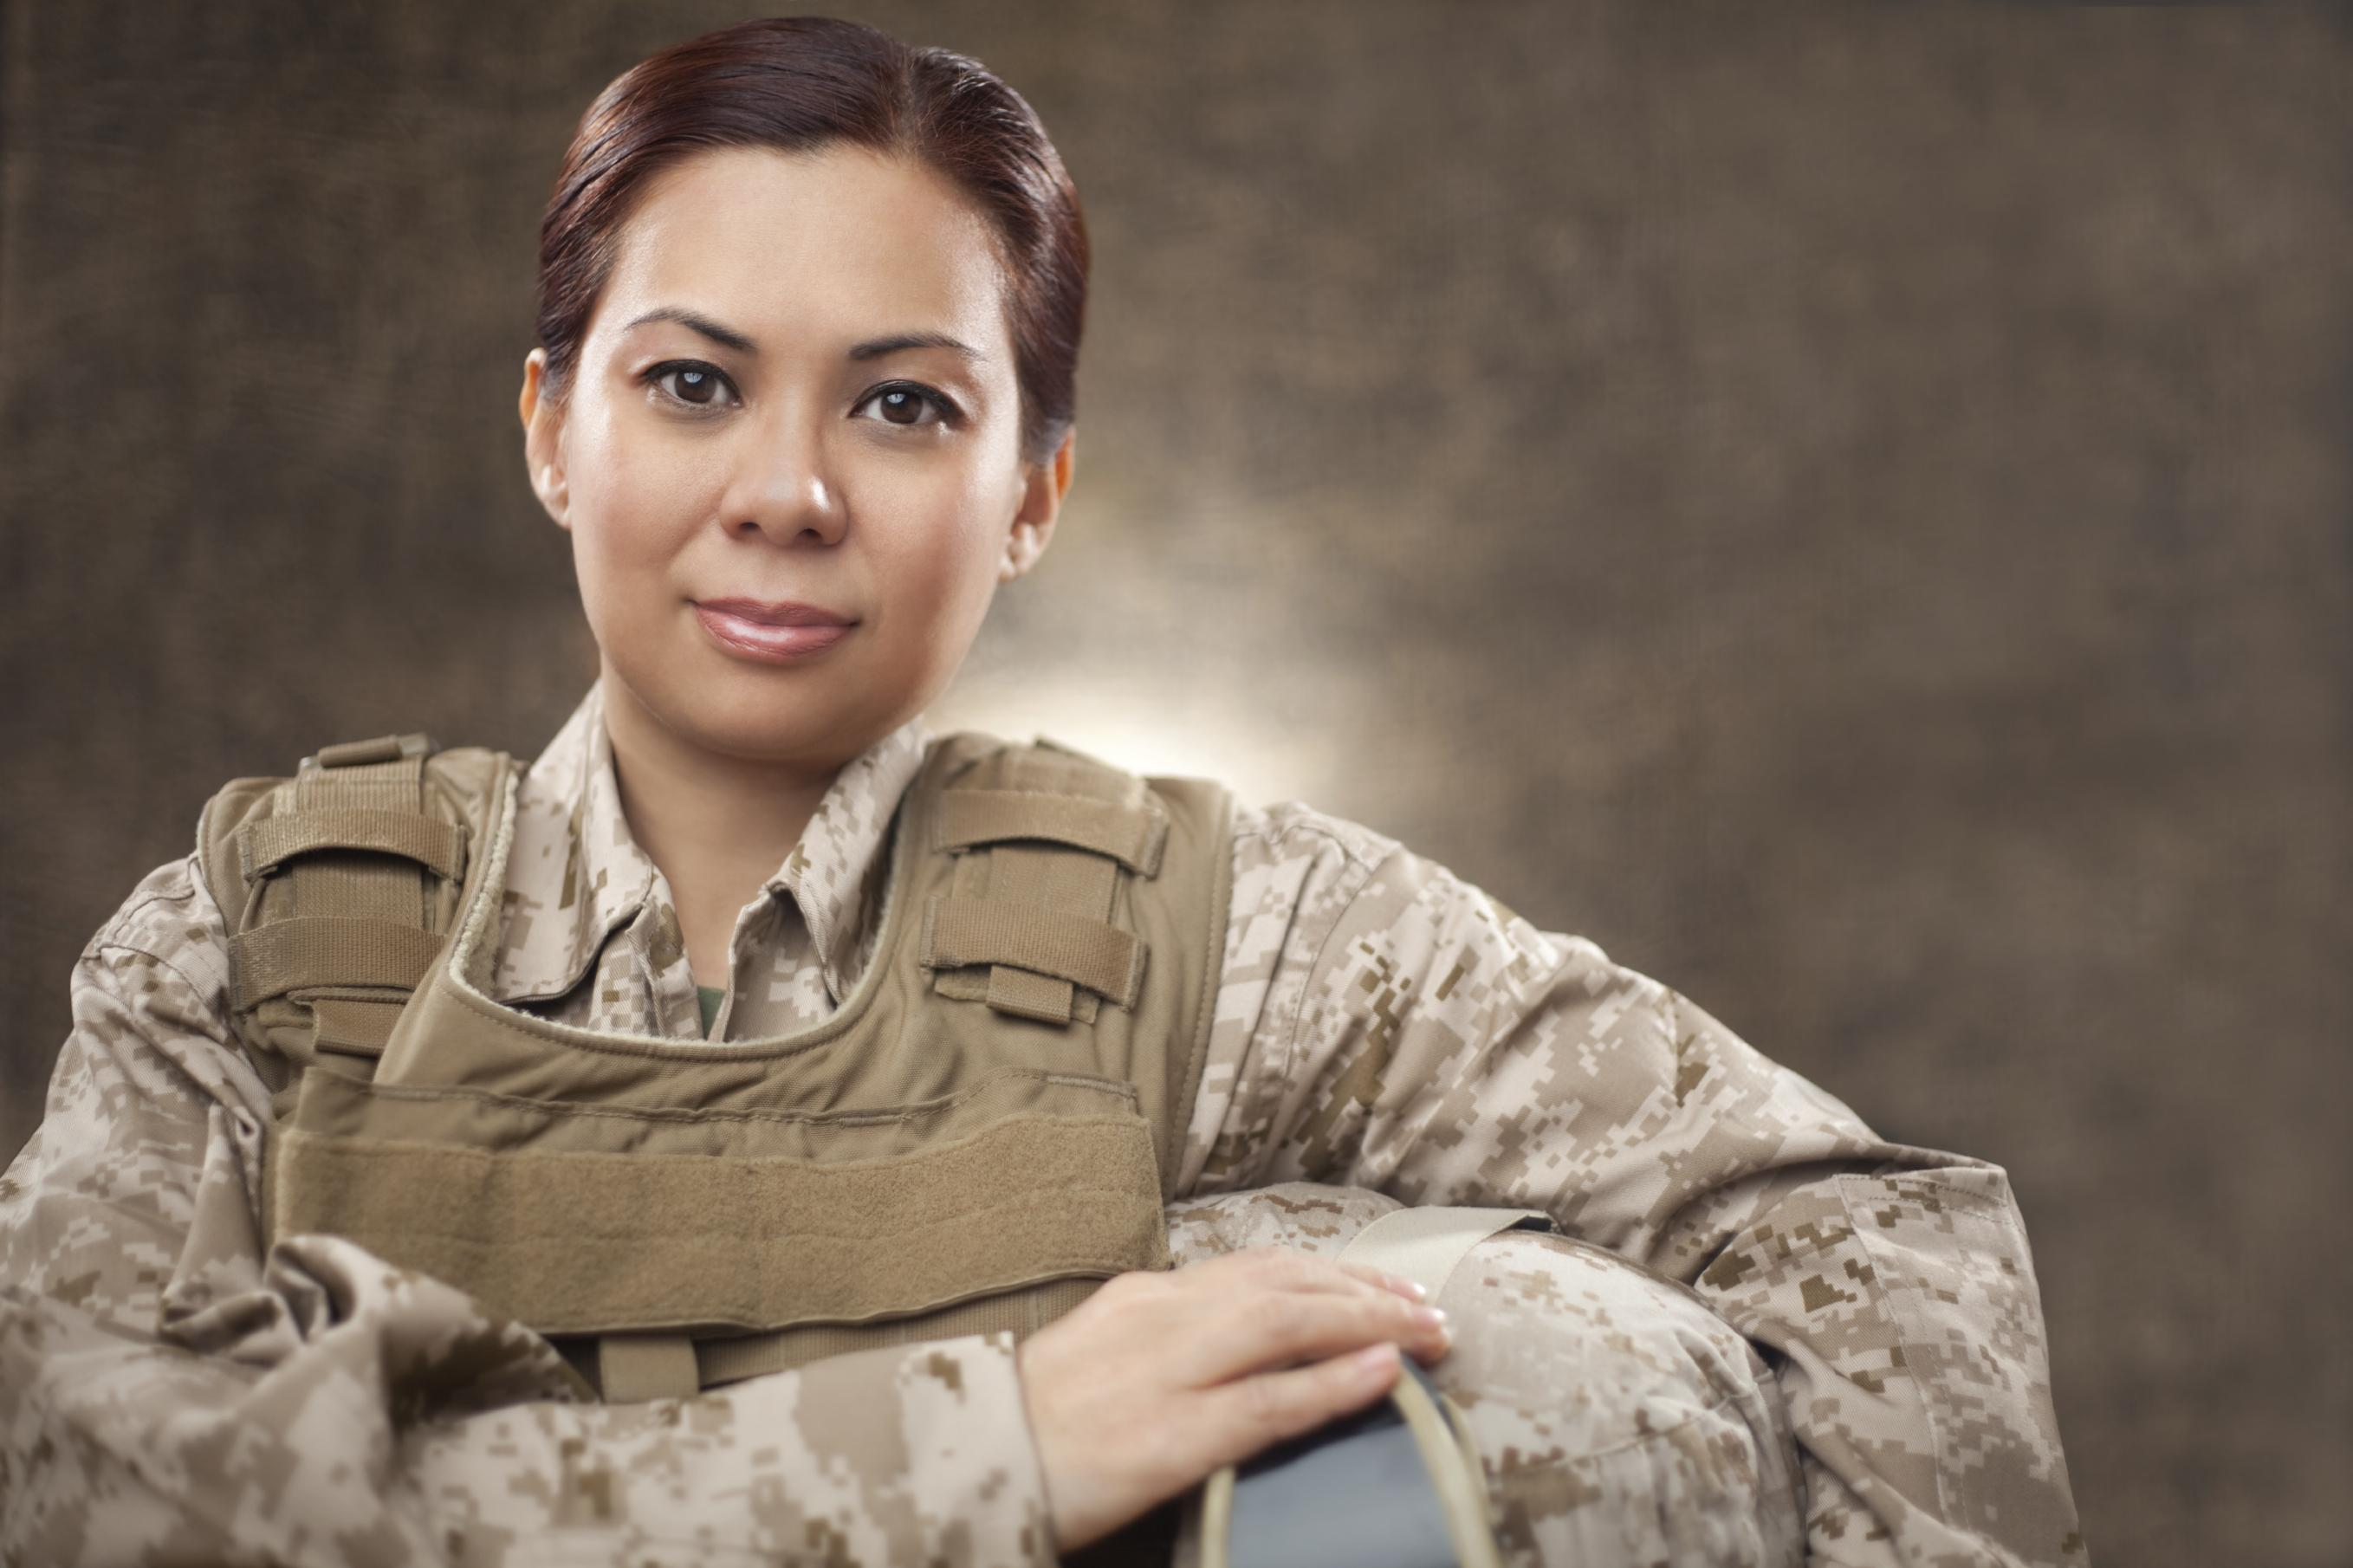 Woman veteran wearing camoflage